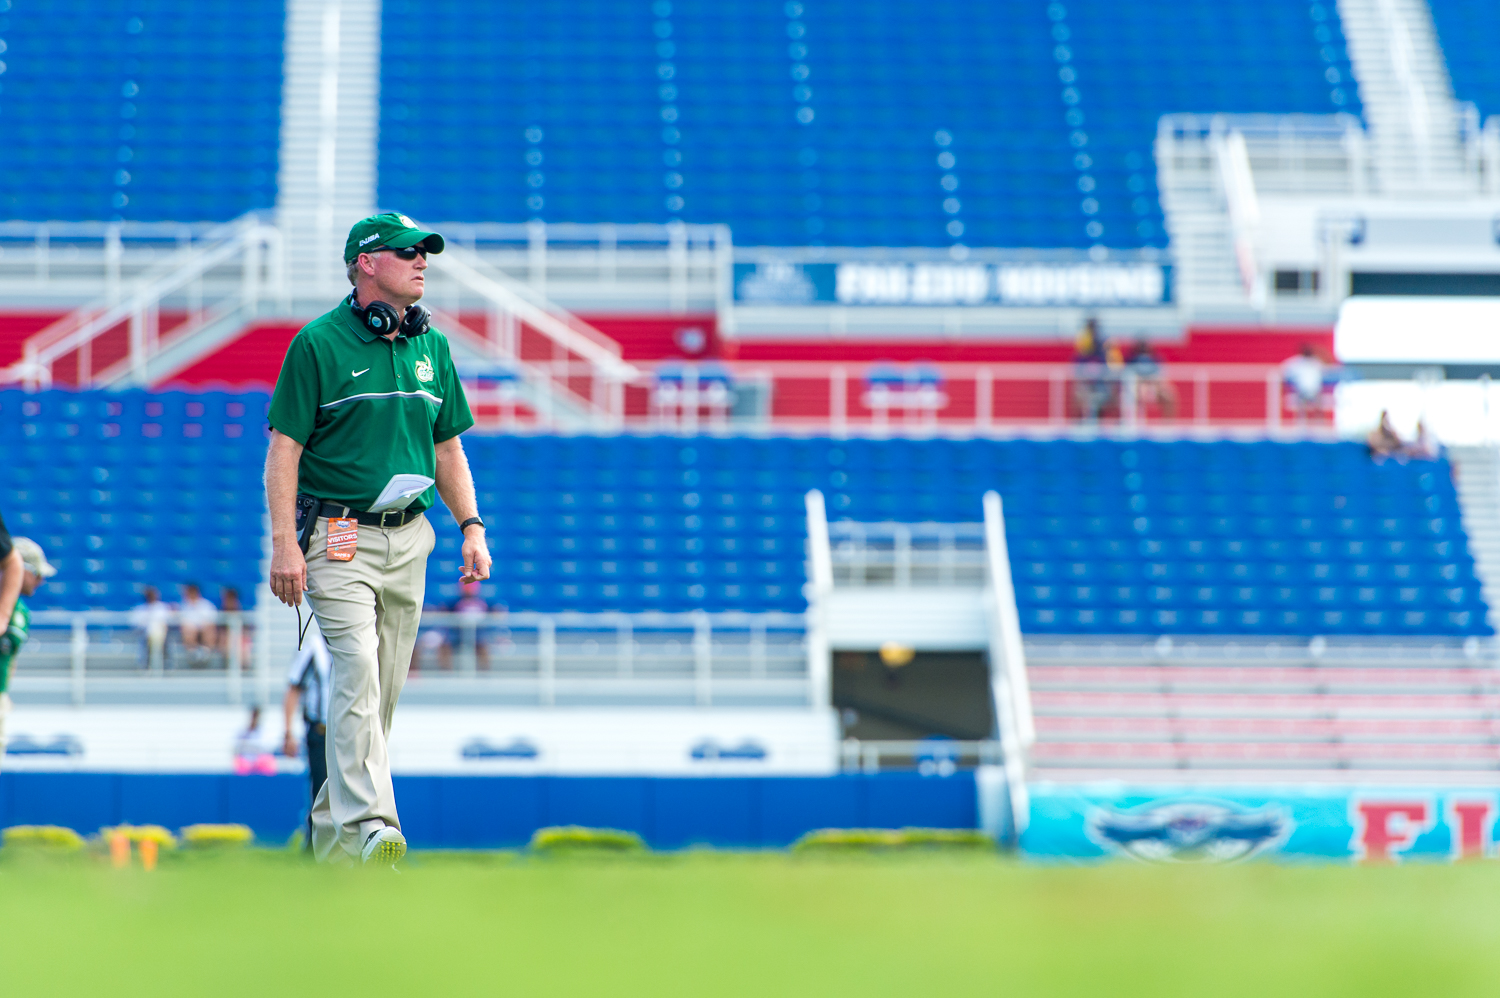 Charlotte head coach Brad Lambert walks onto the field after two consecutive false start penalties forced his punter to kick further in the endzone.